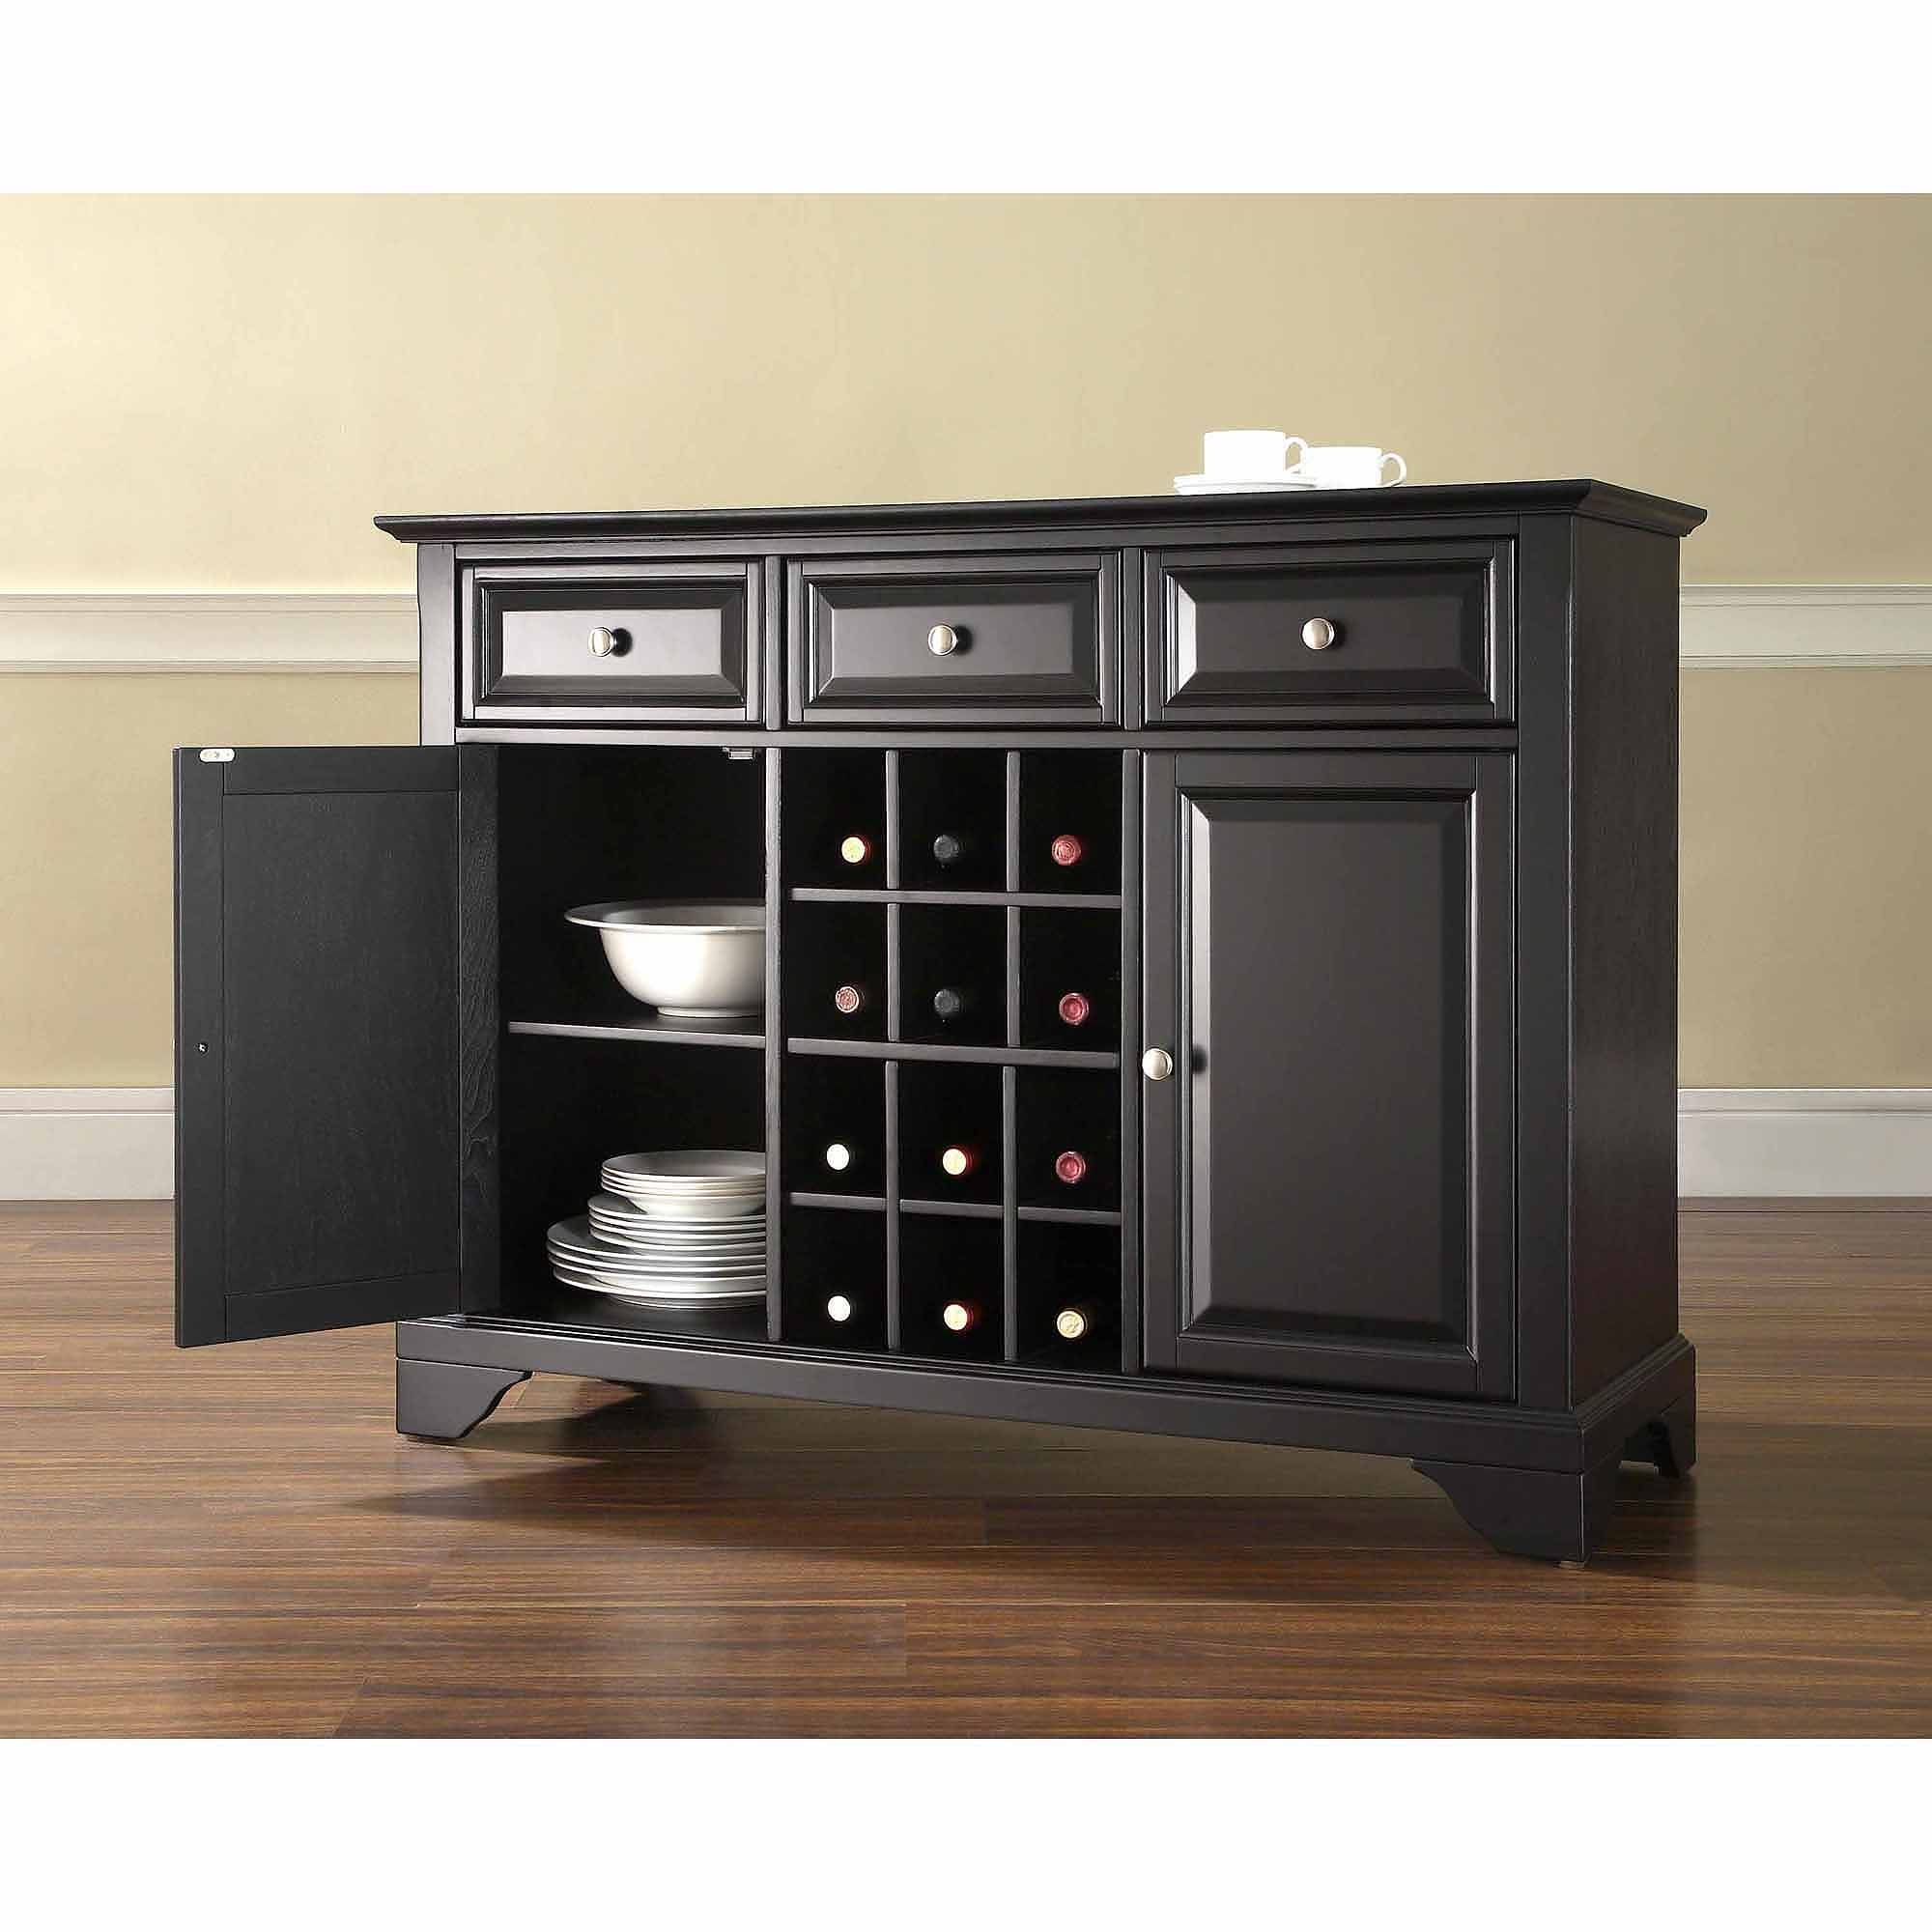 Permalink to Sideboard Cabinet With Wine Storage